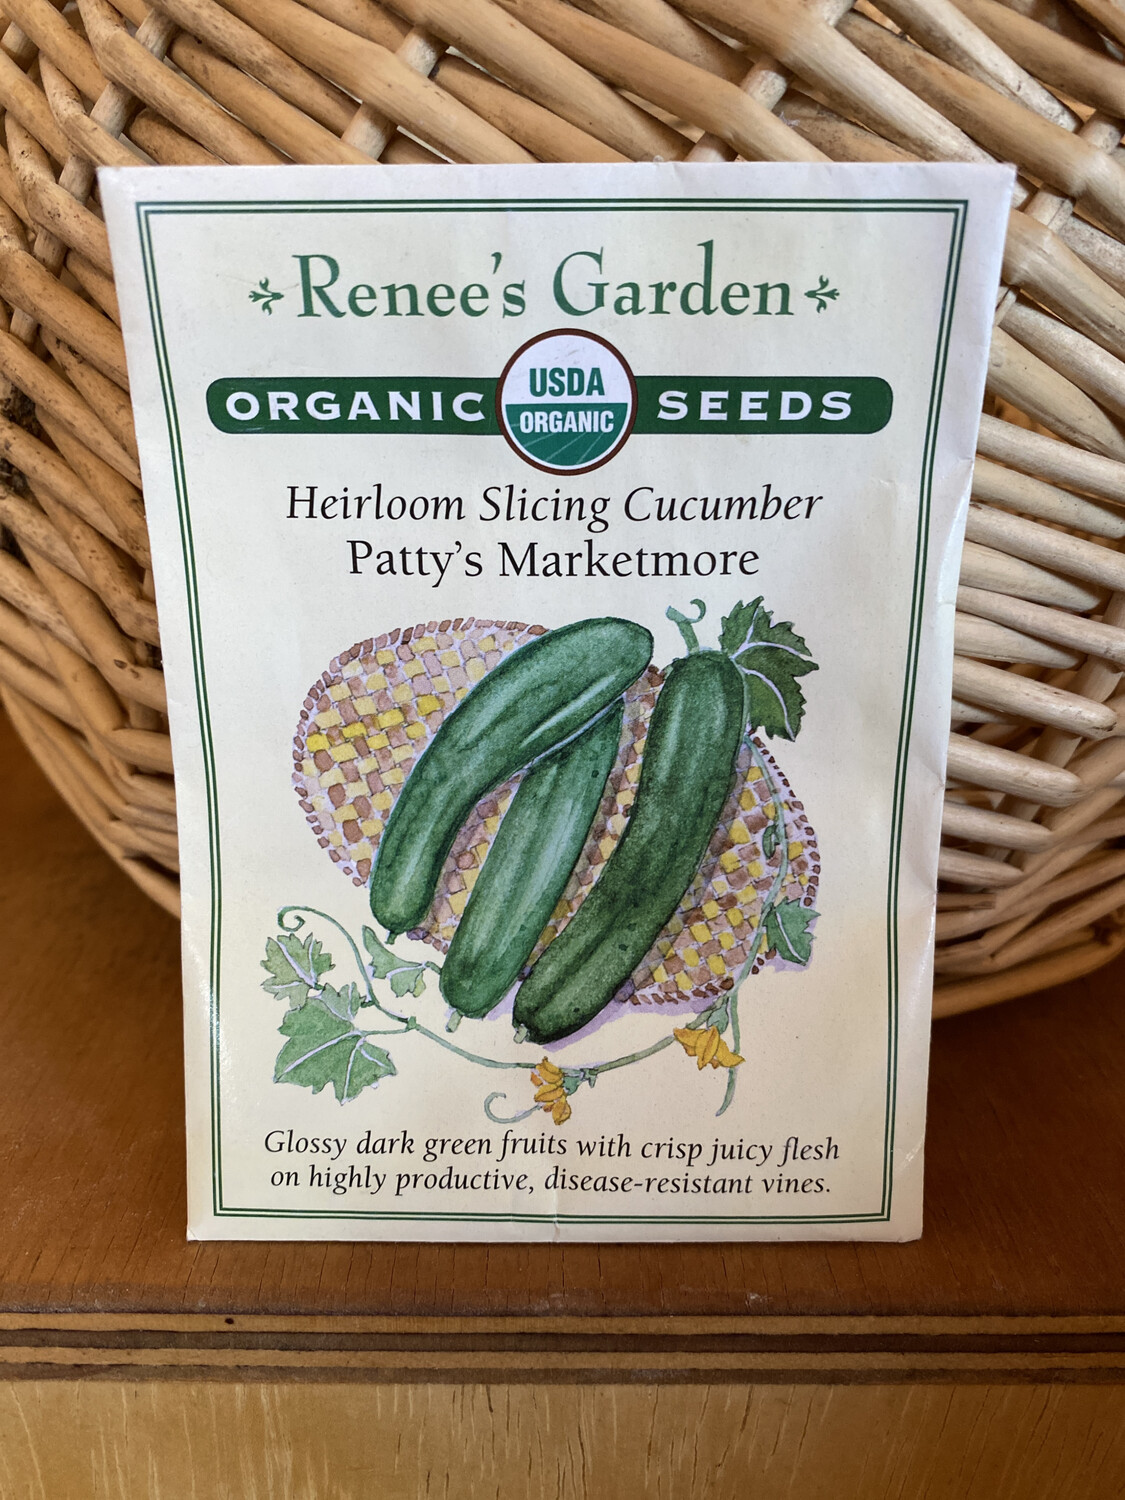 Heirloom Slicing Cucumber Patty's Marketmore   Renee's Garden Seed Pack   Past Year's Seeds   Reduced Price